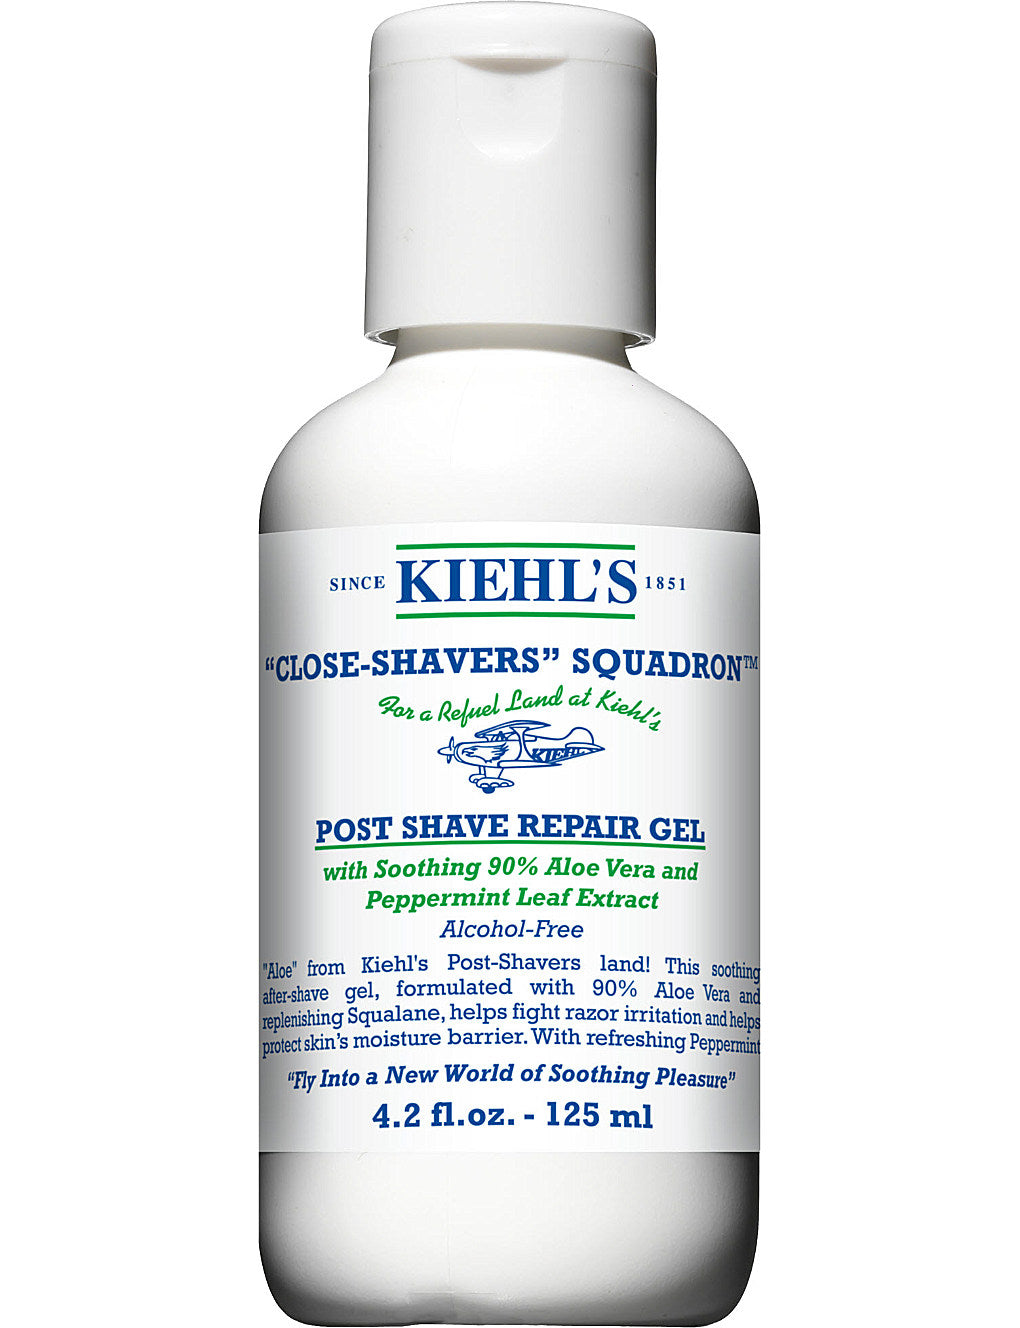 Post-Shave Repair Gel 125ml